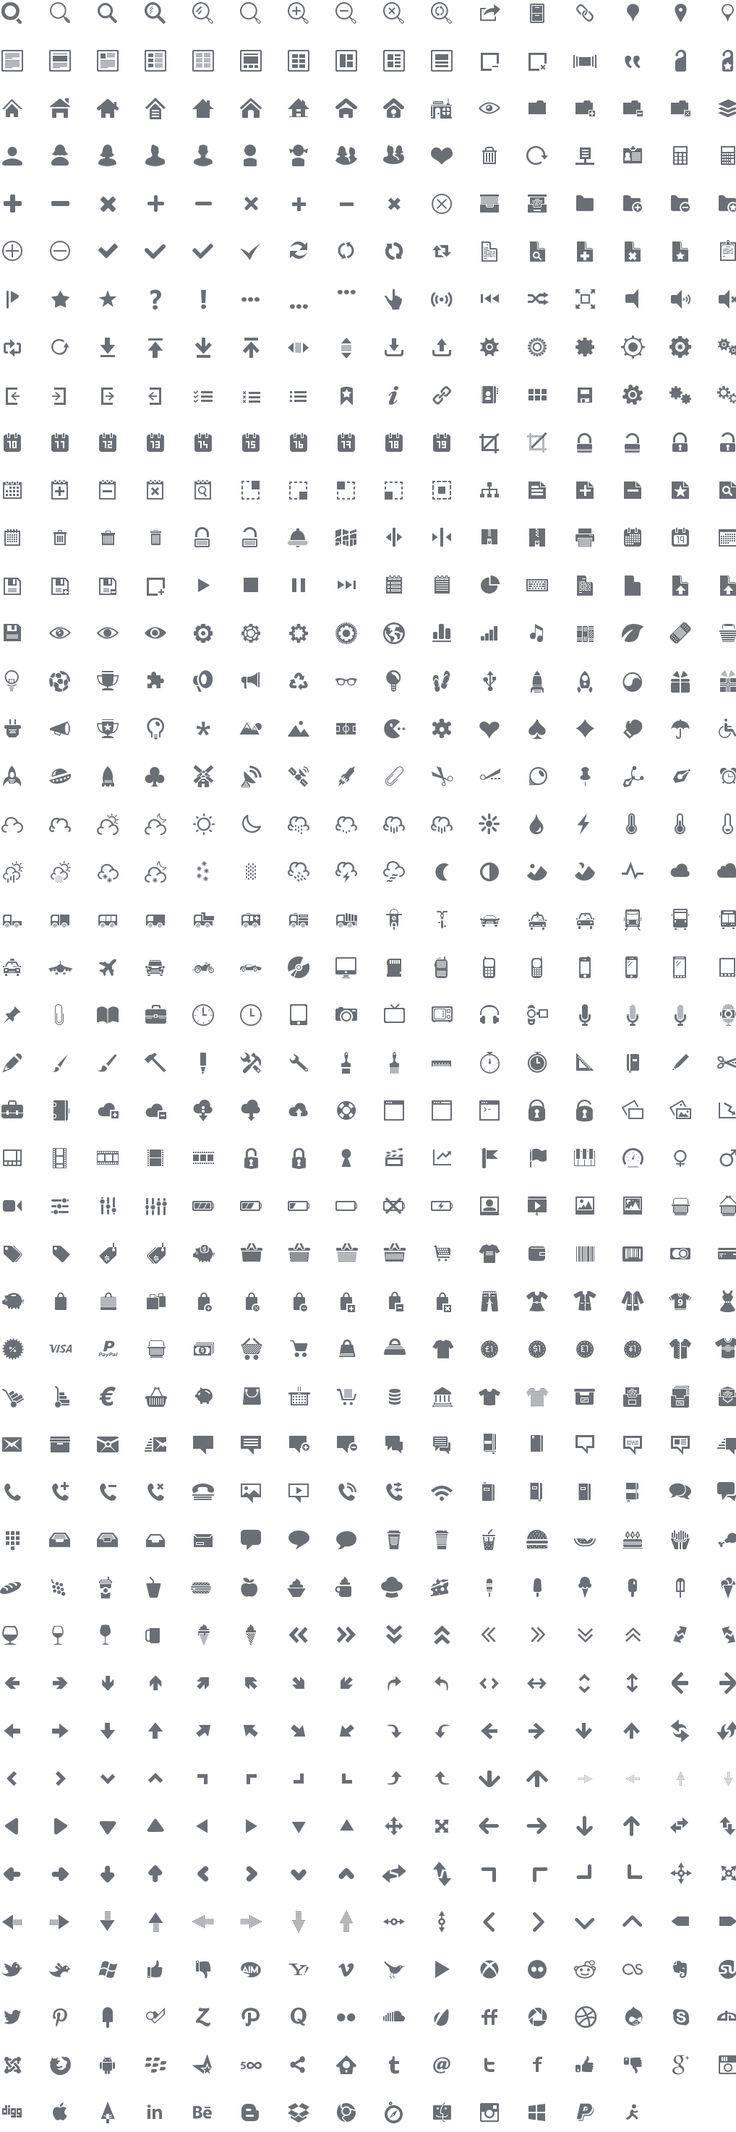 Get 720 Premium Vector Icon set for Web from IconDevs